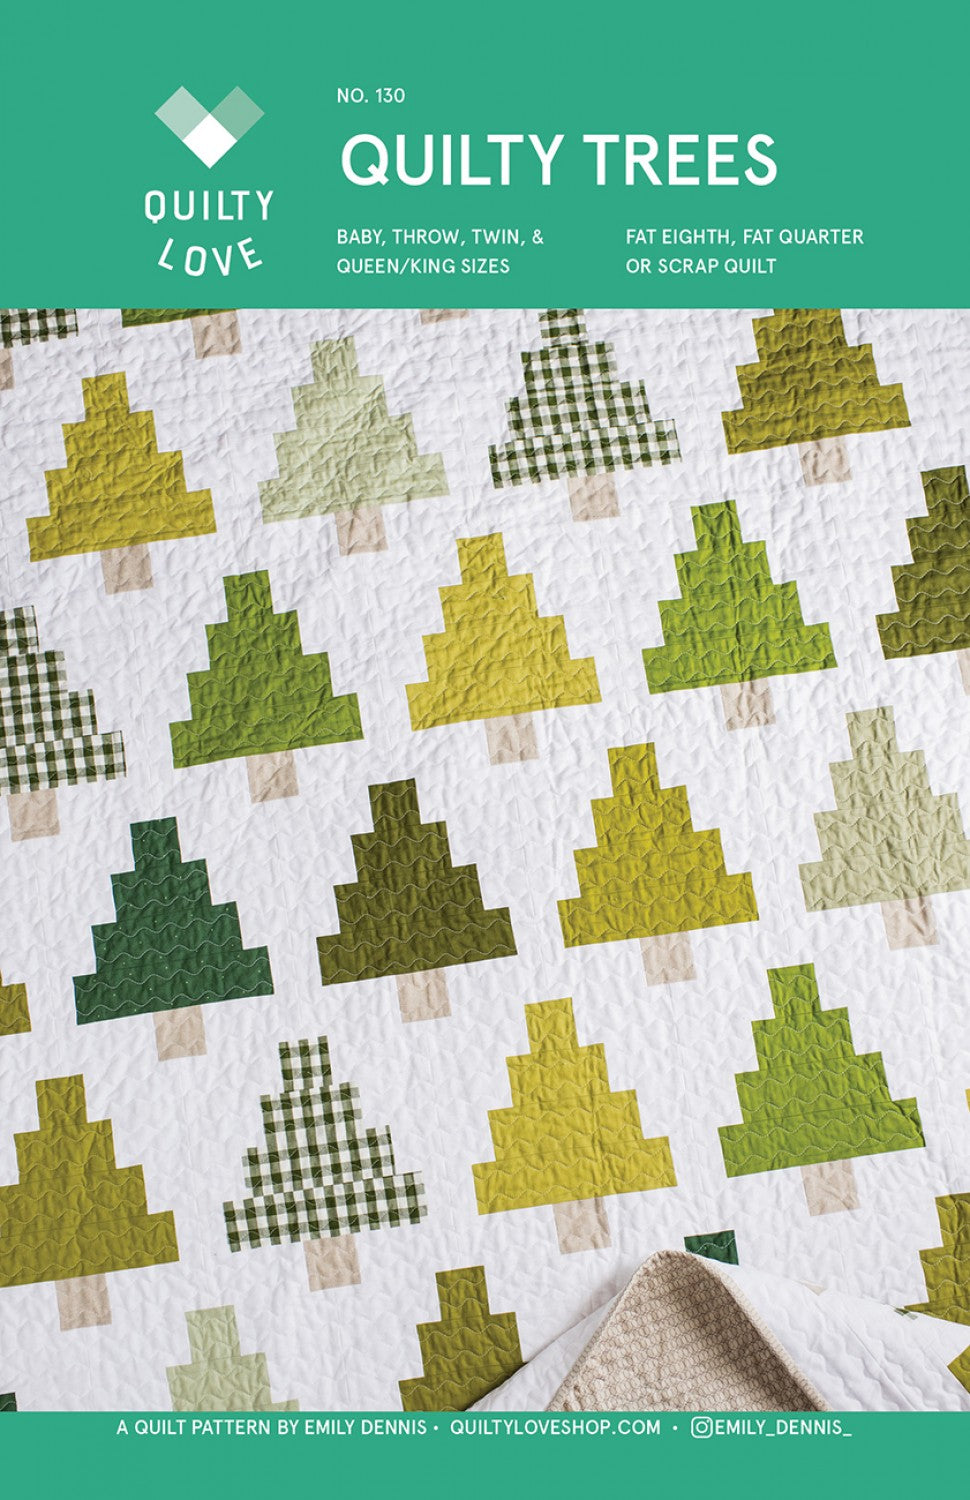 Quilty Trees Quilt Pattern by Emily Dennis of Quilty Love